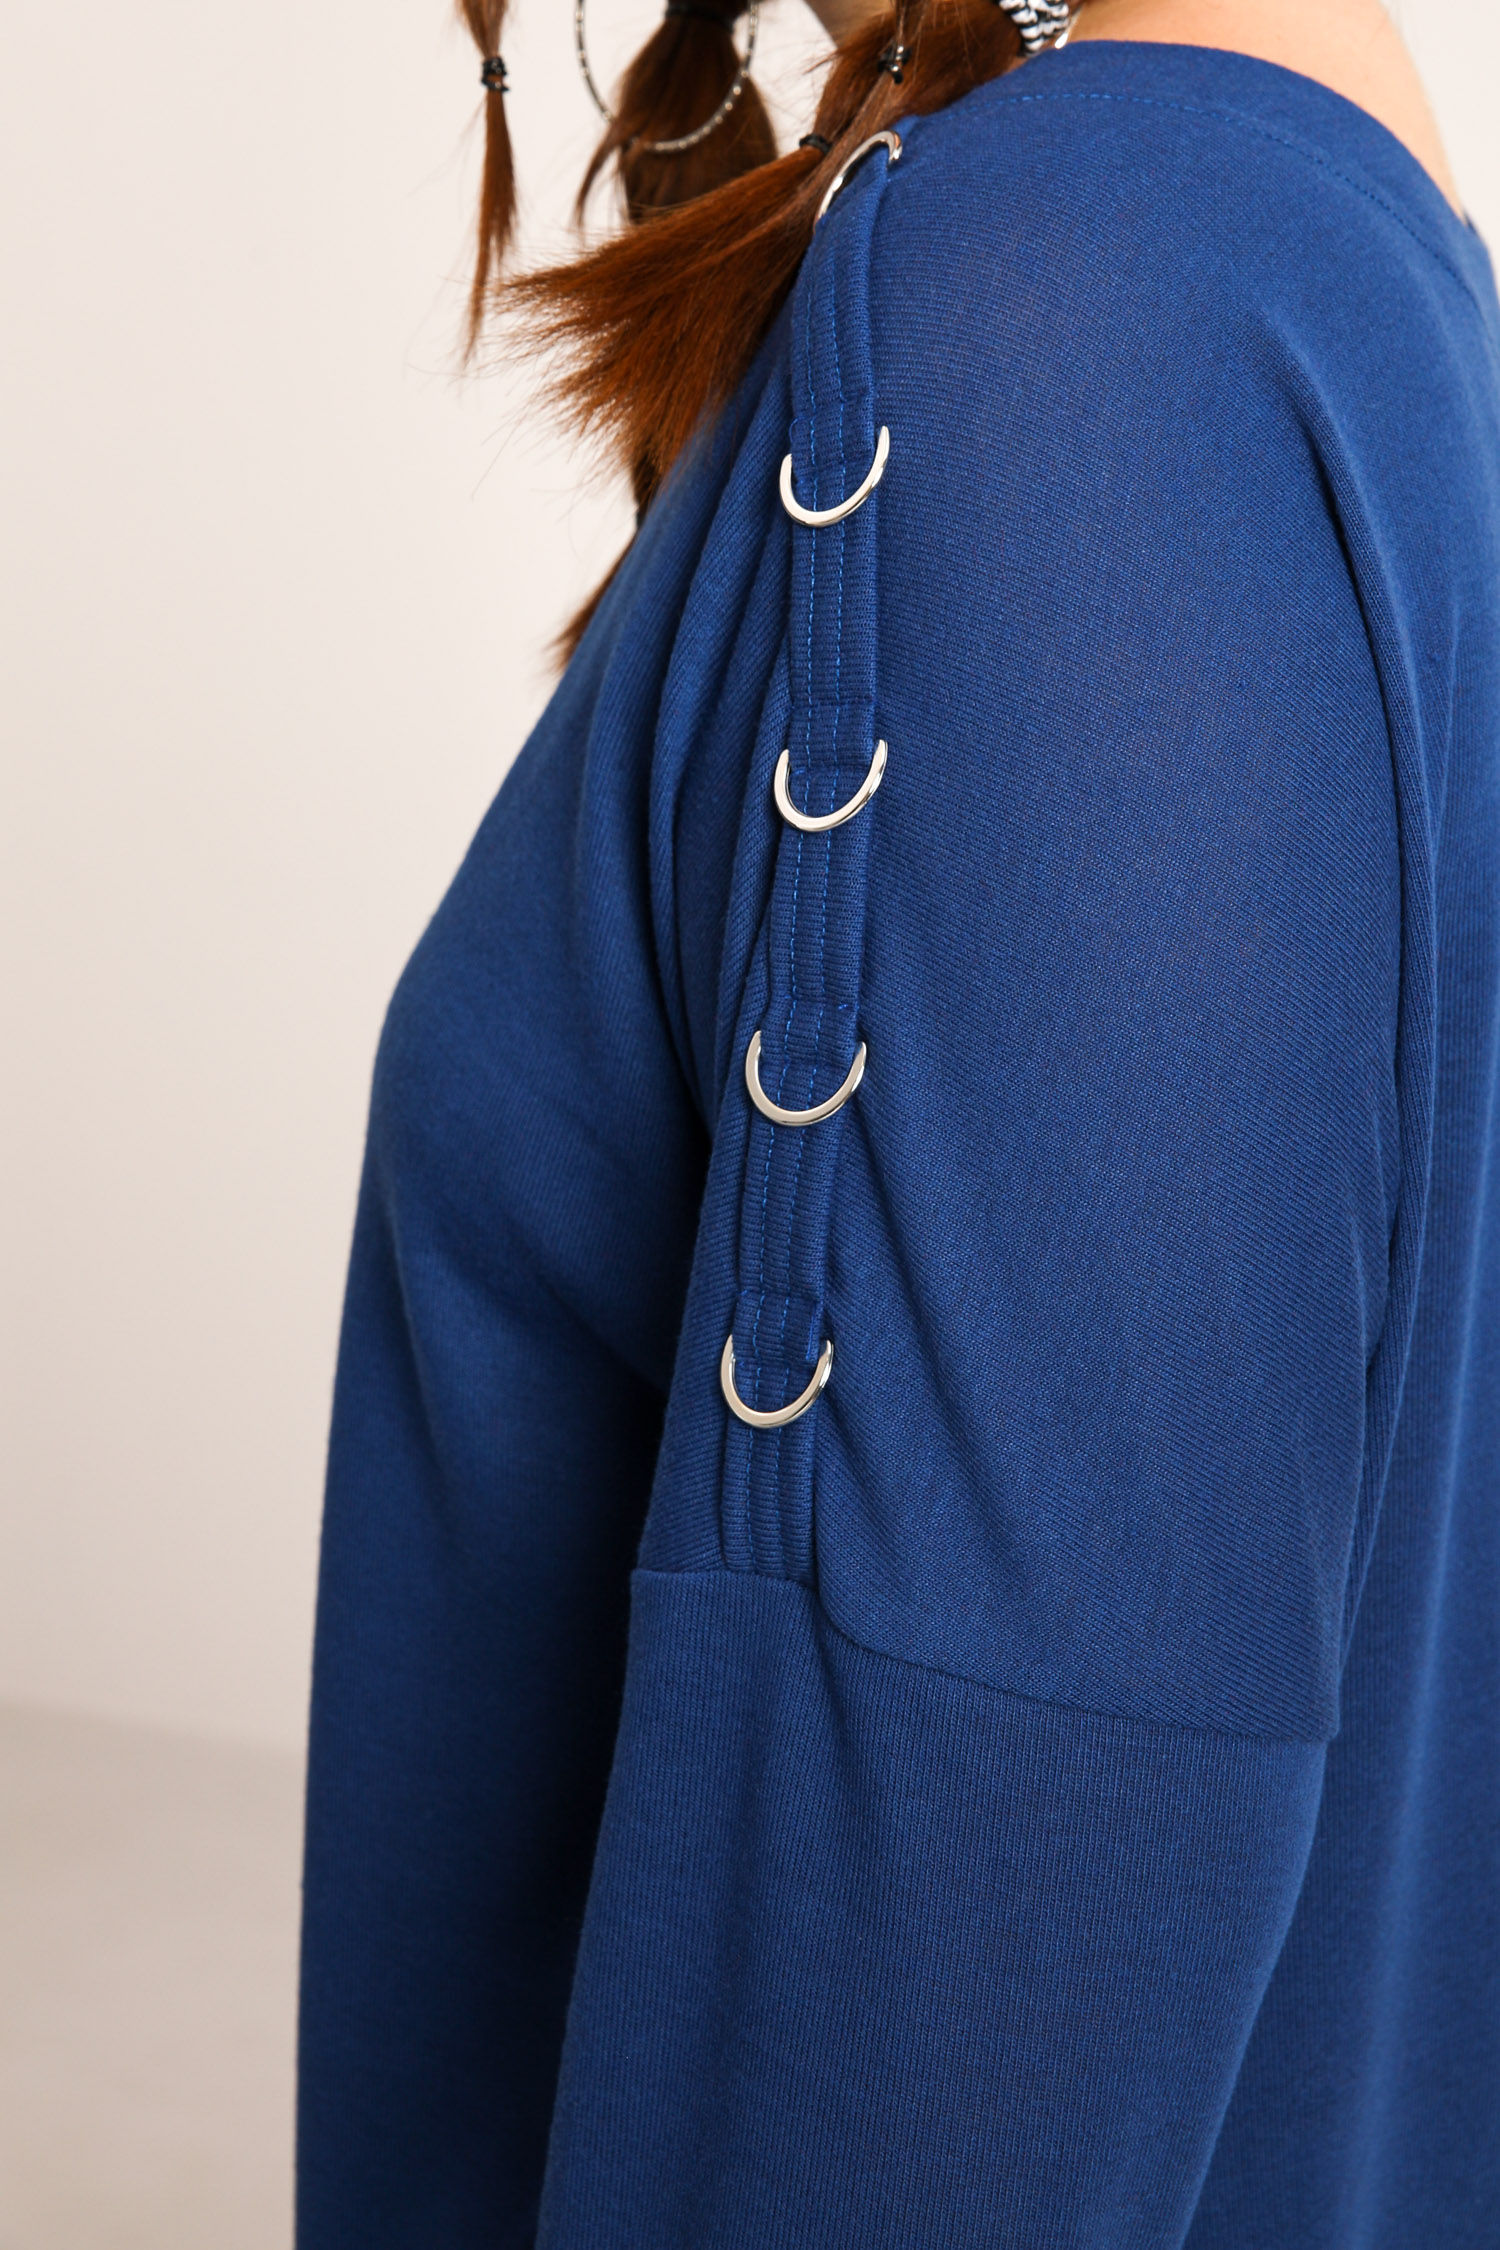 Reversible sweater with metal rings